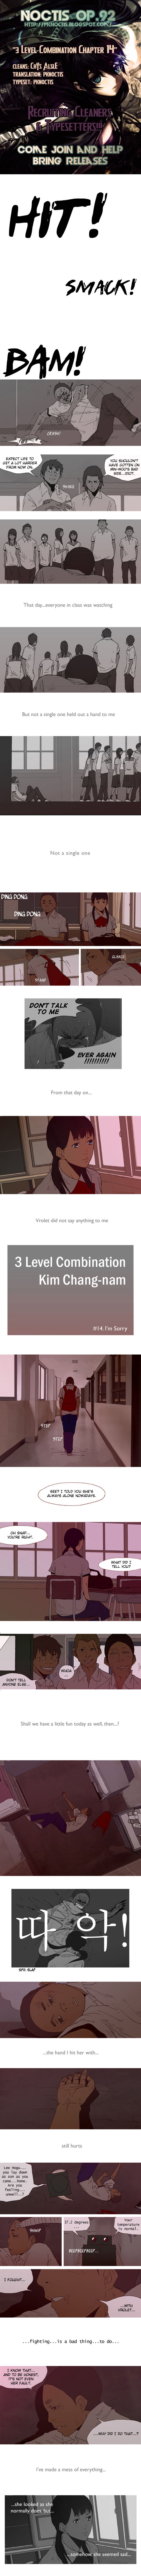 3 Level Combination 14 Page 1